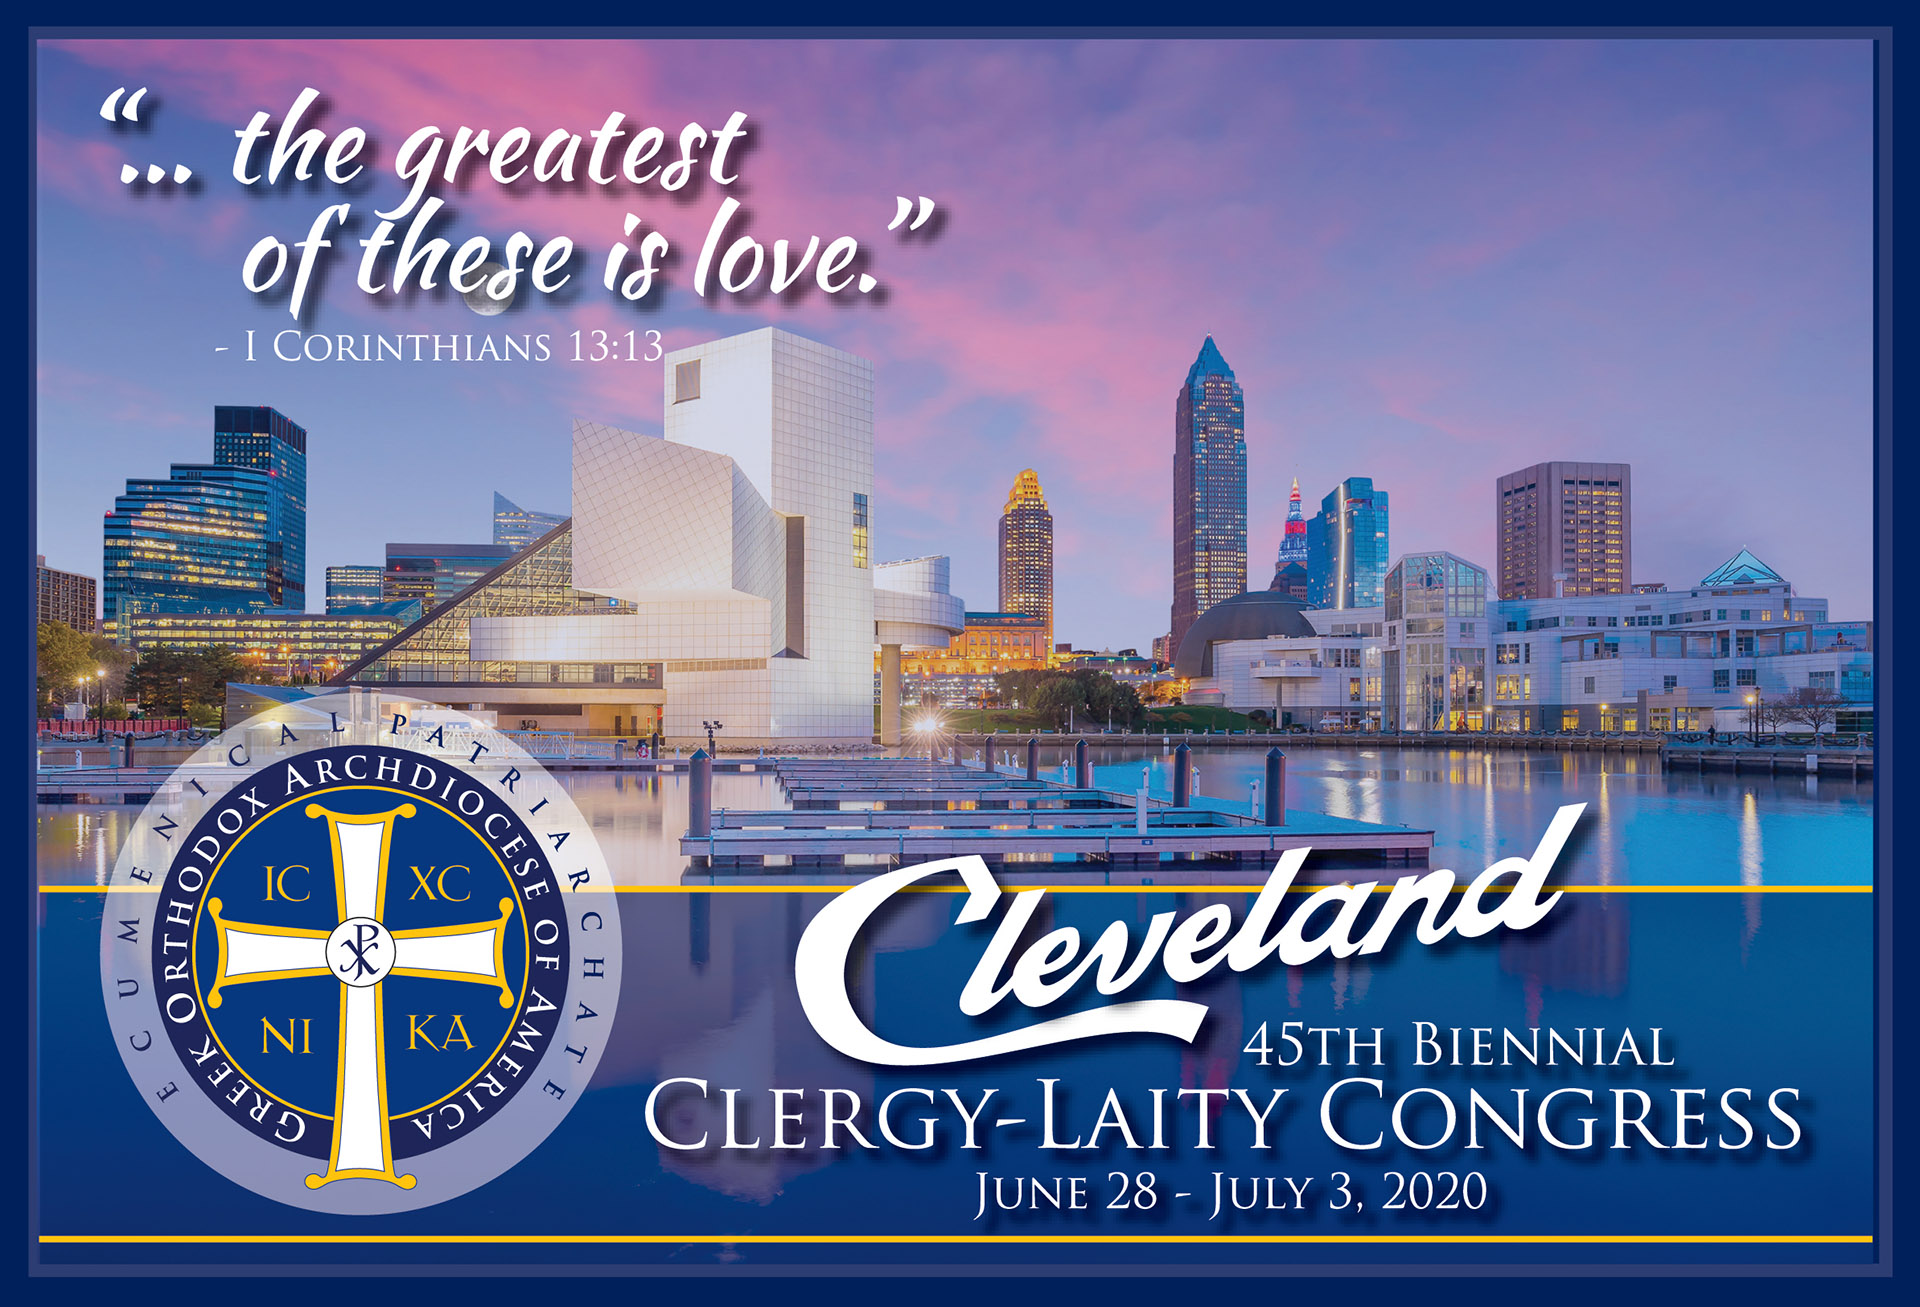 Greek Orthodox Archdiocese of America 45th Biennial Clergy-Laity Congress